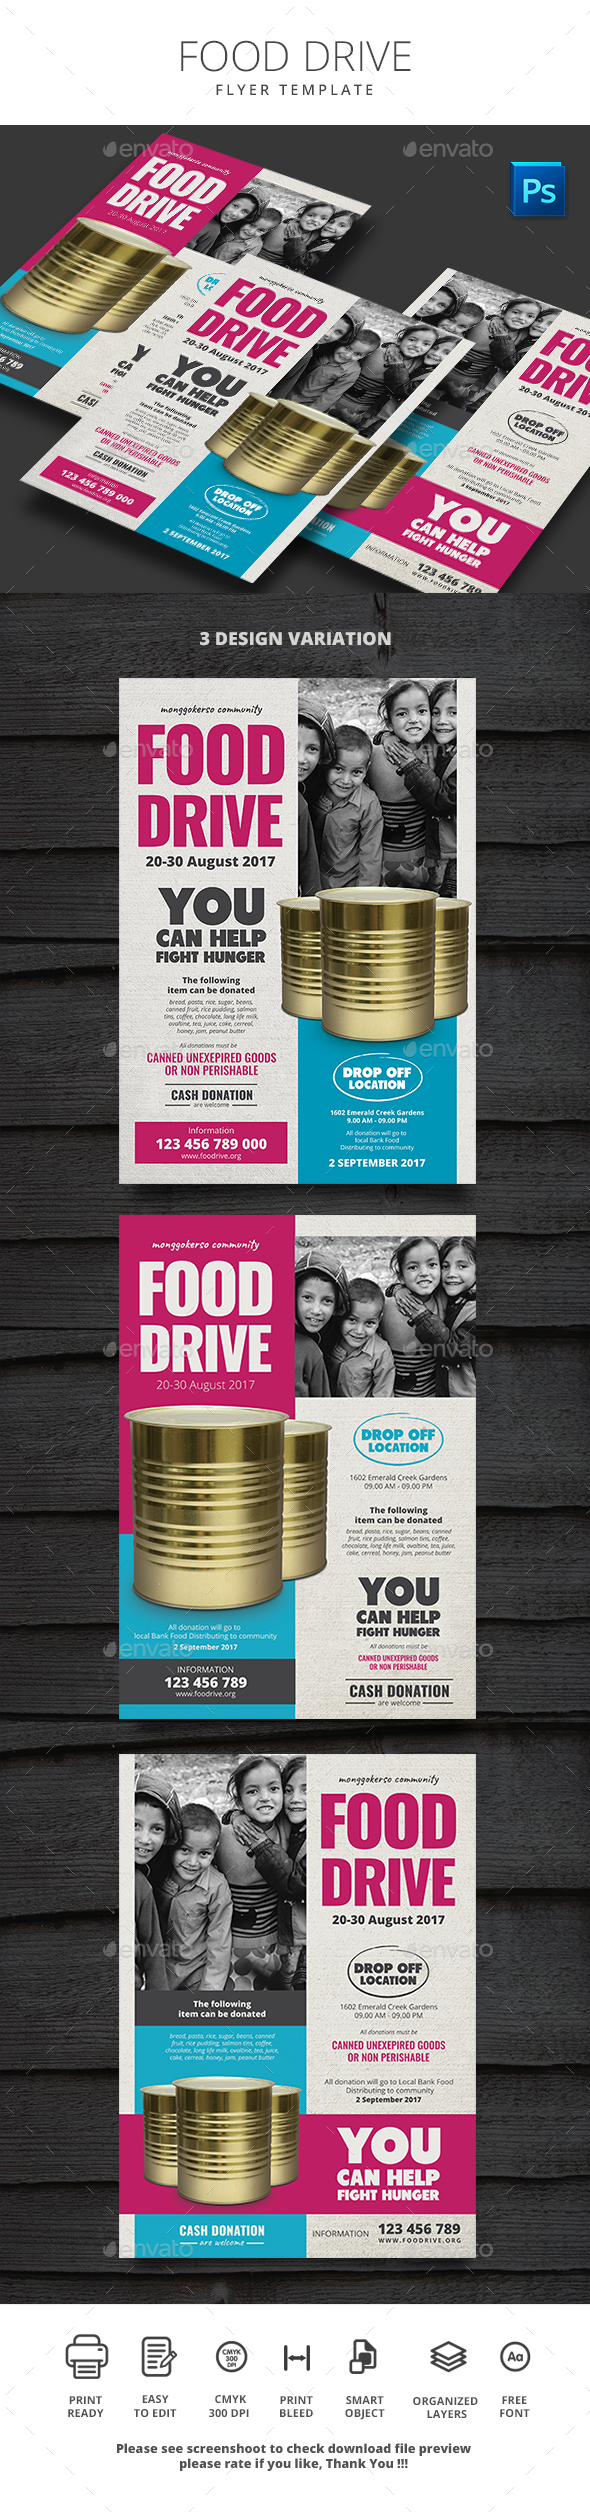 Free Printable Food Drive Flyer Template 187 Tinkytyler Org